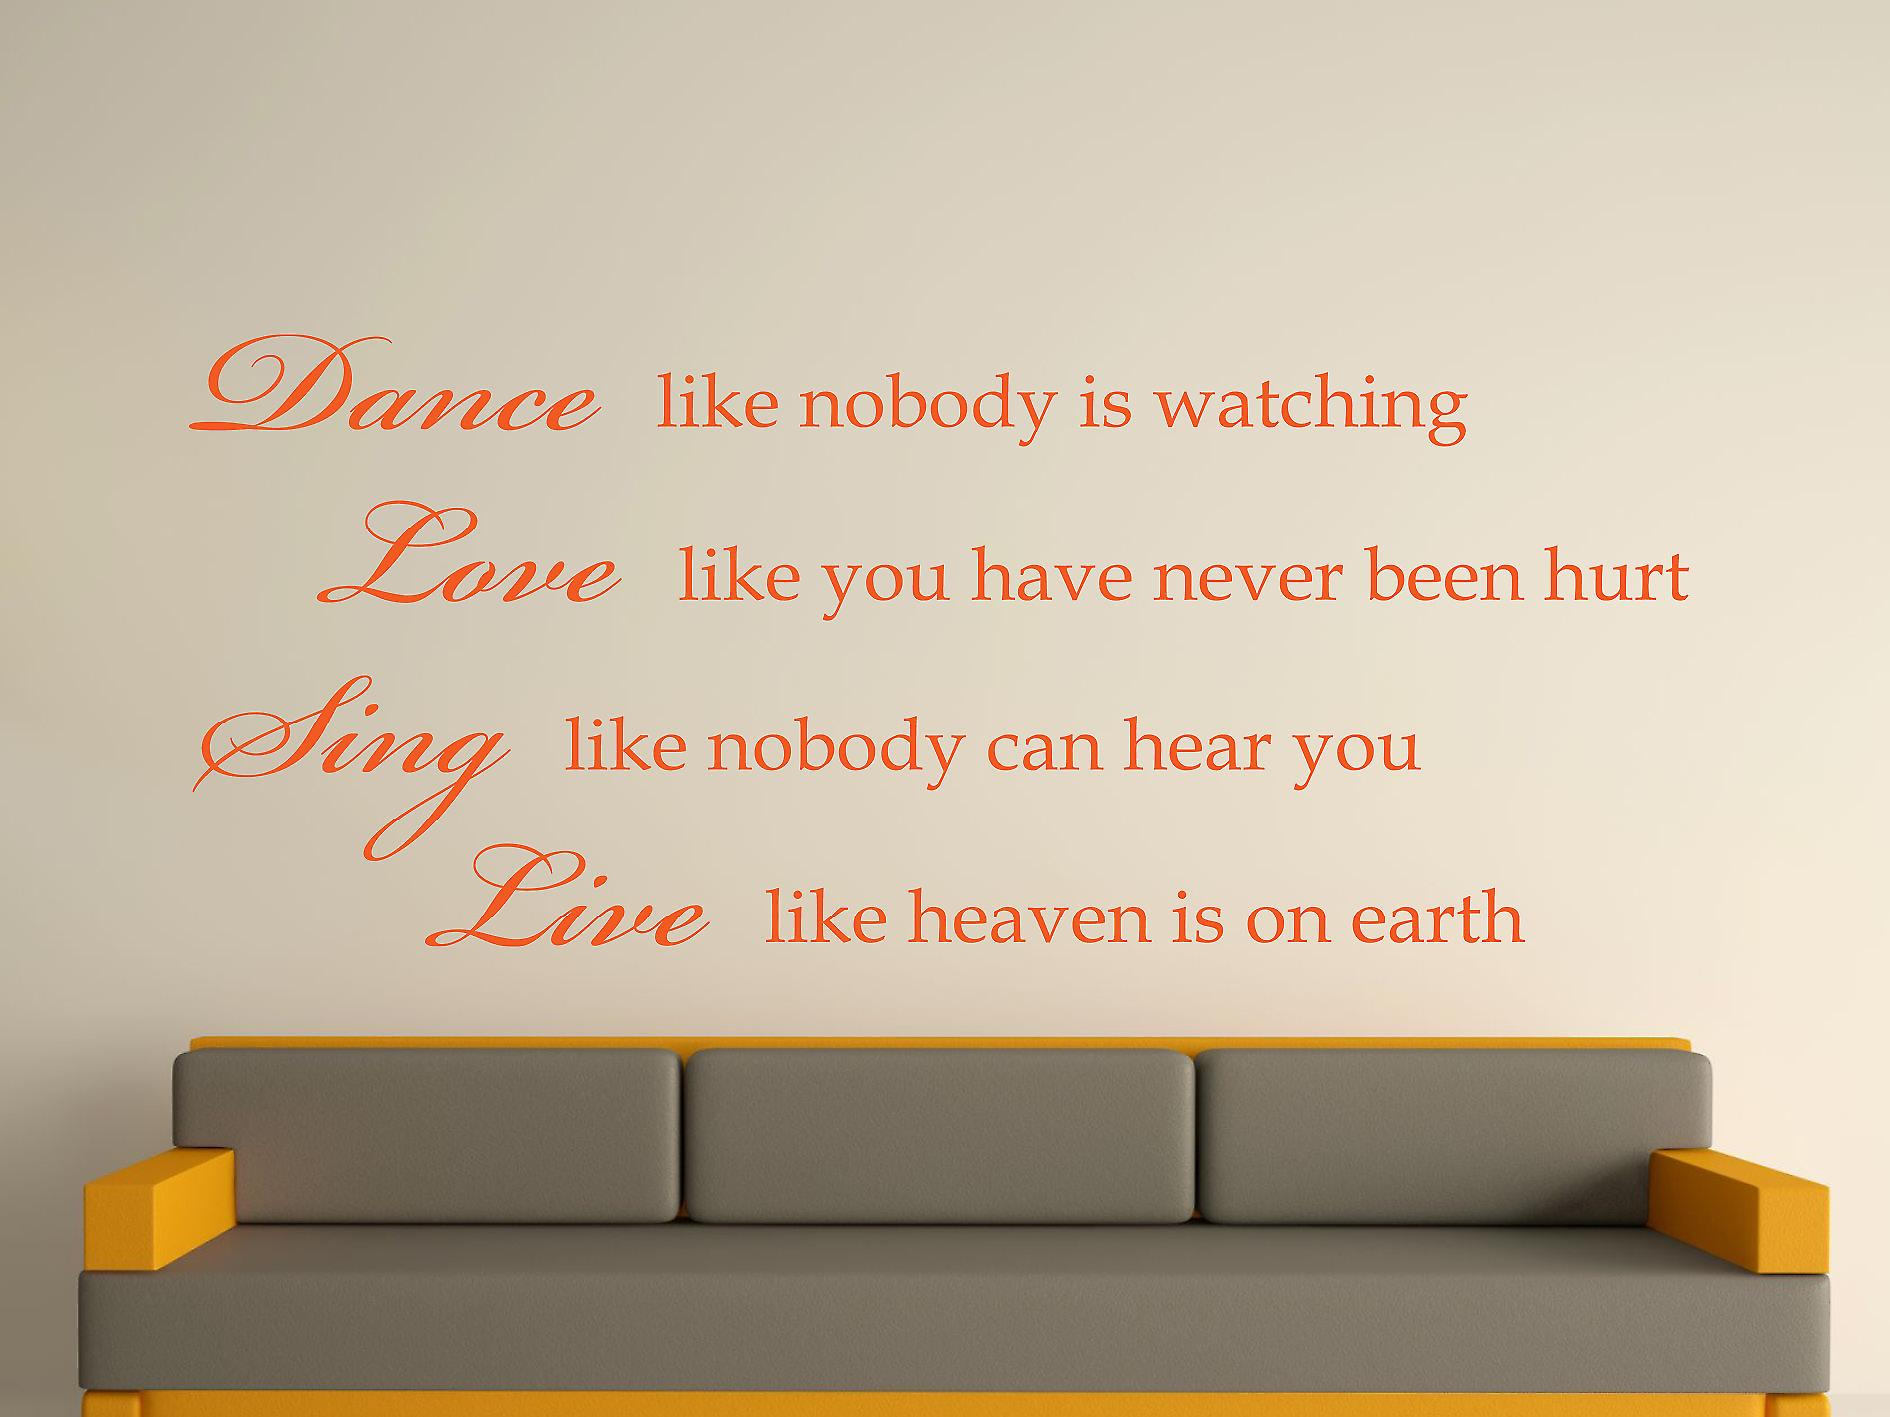 Dance Like Nobody Is Watching Wall Art Sticker - Orange